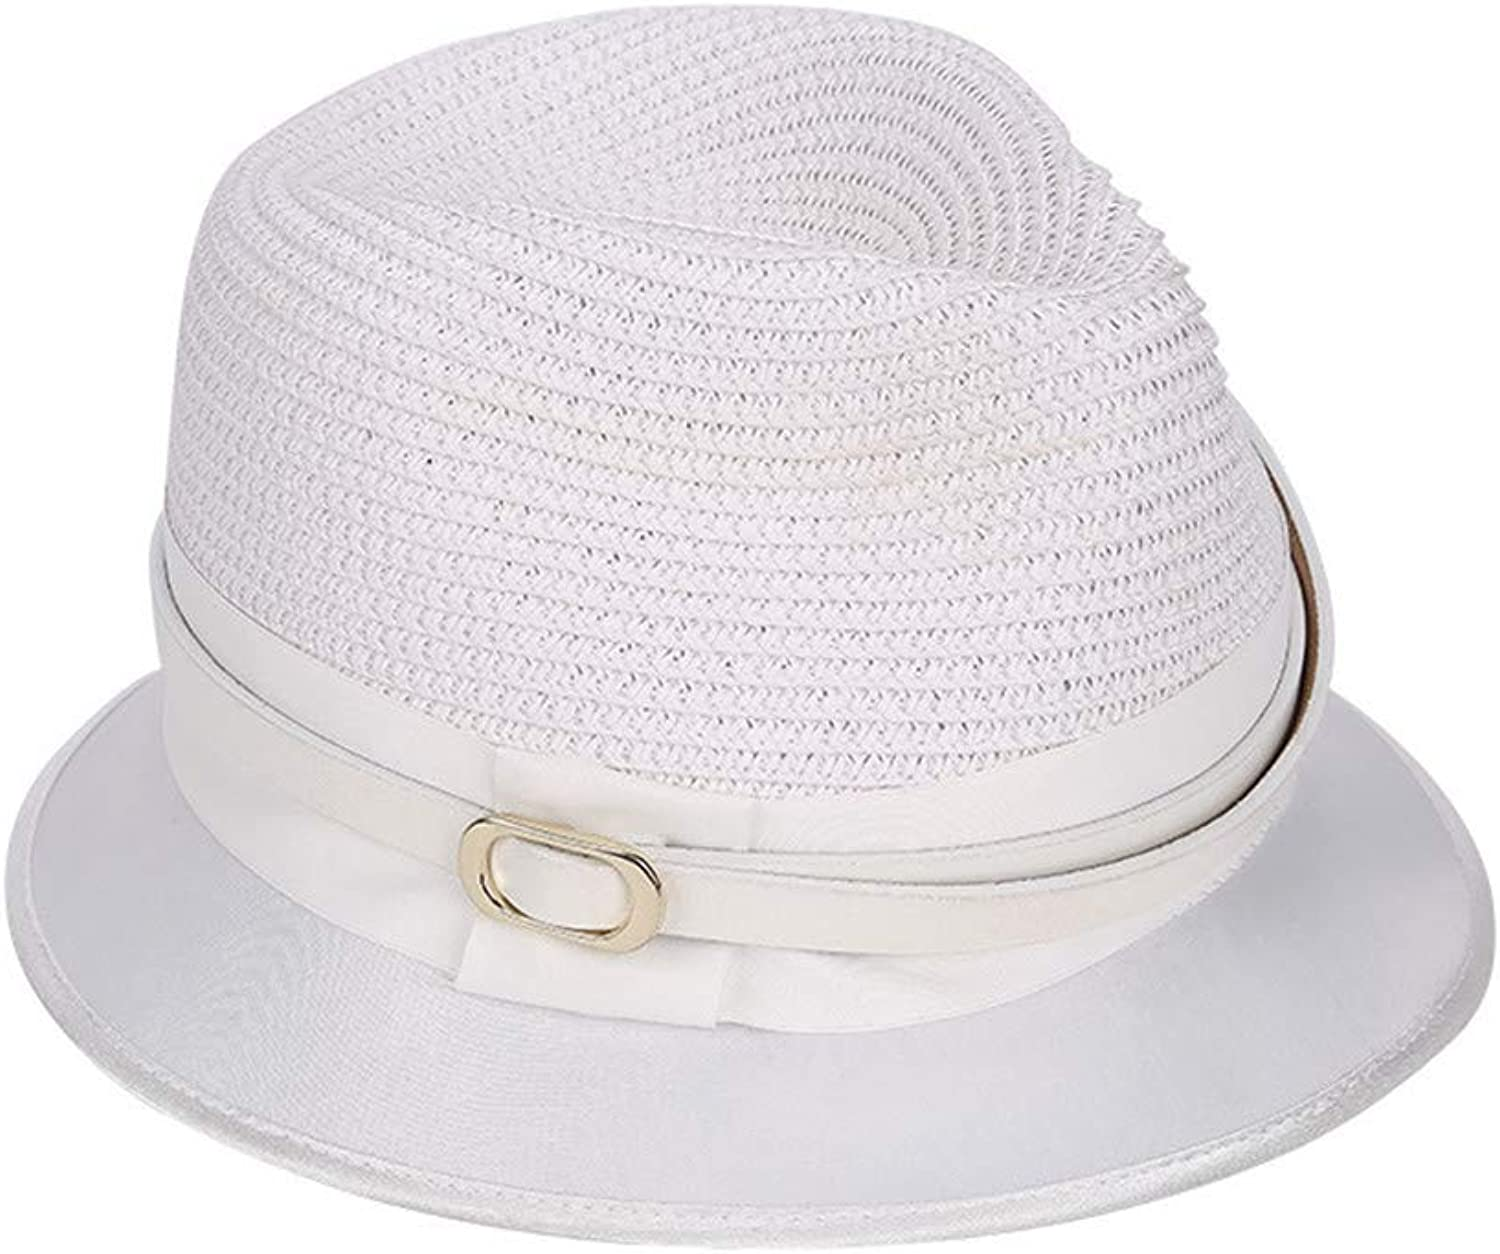 Church Hats for Women Tea Party Dress Hat for Ladies